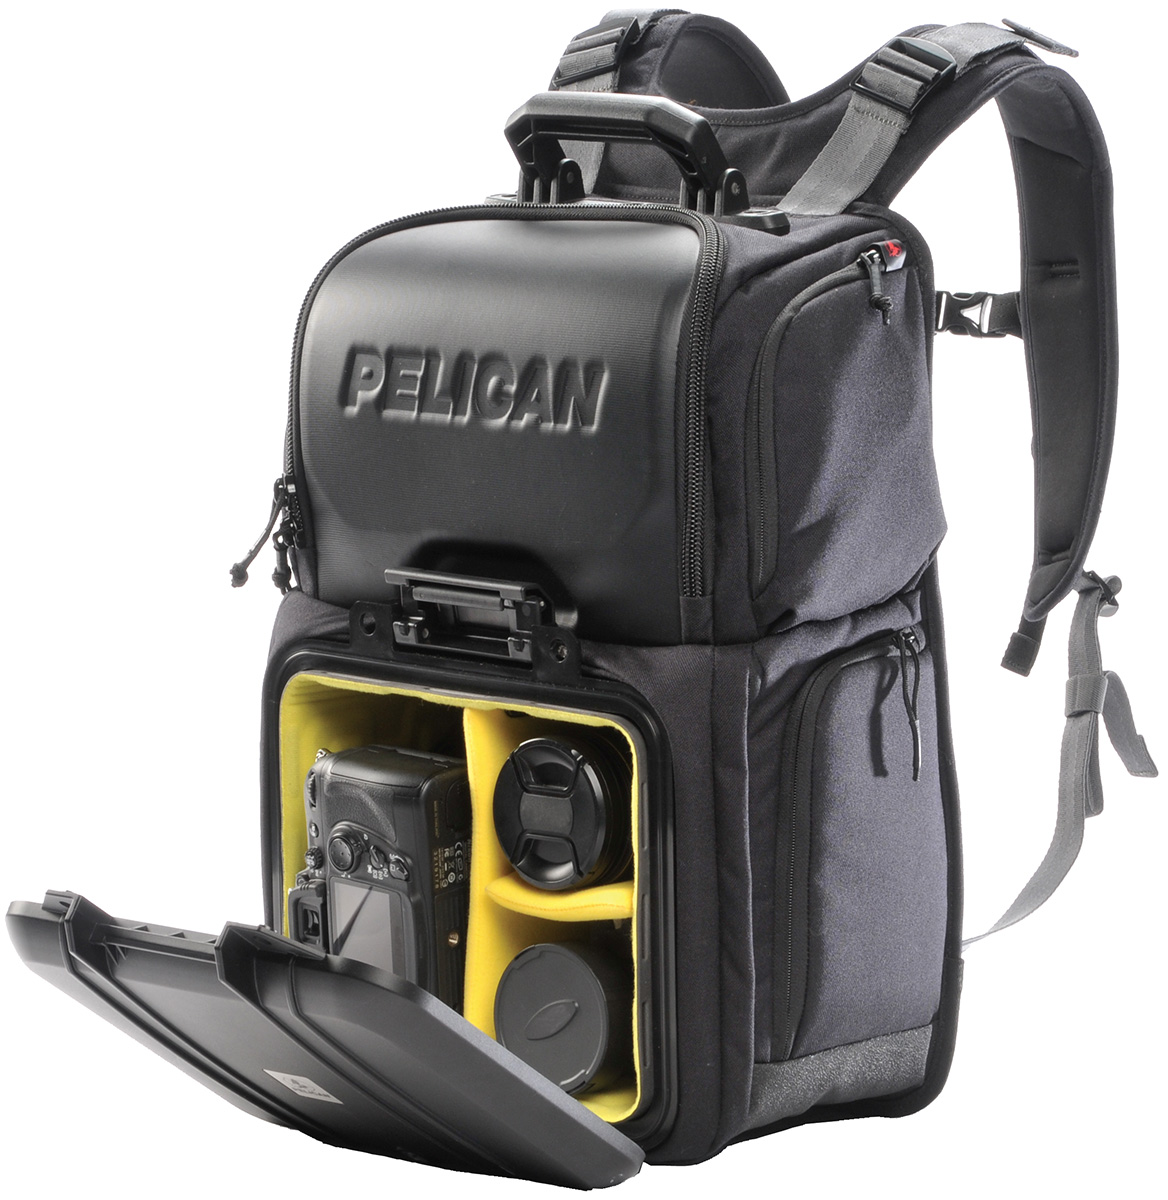 Waterproof luggage & camera backpacks | Pelican Consumer